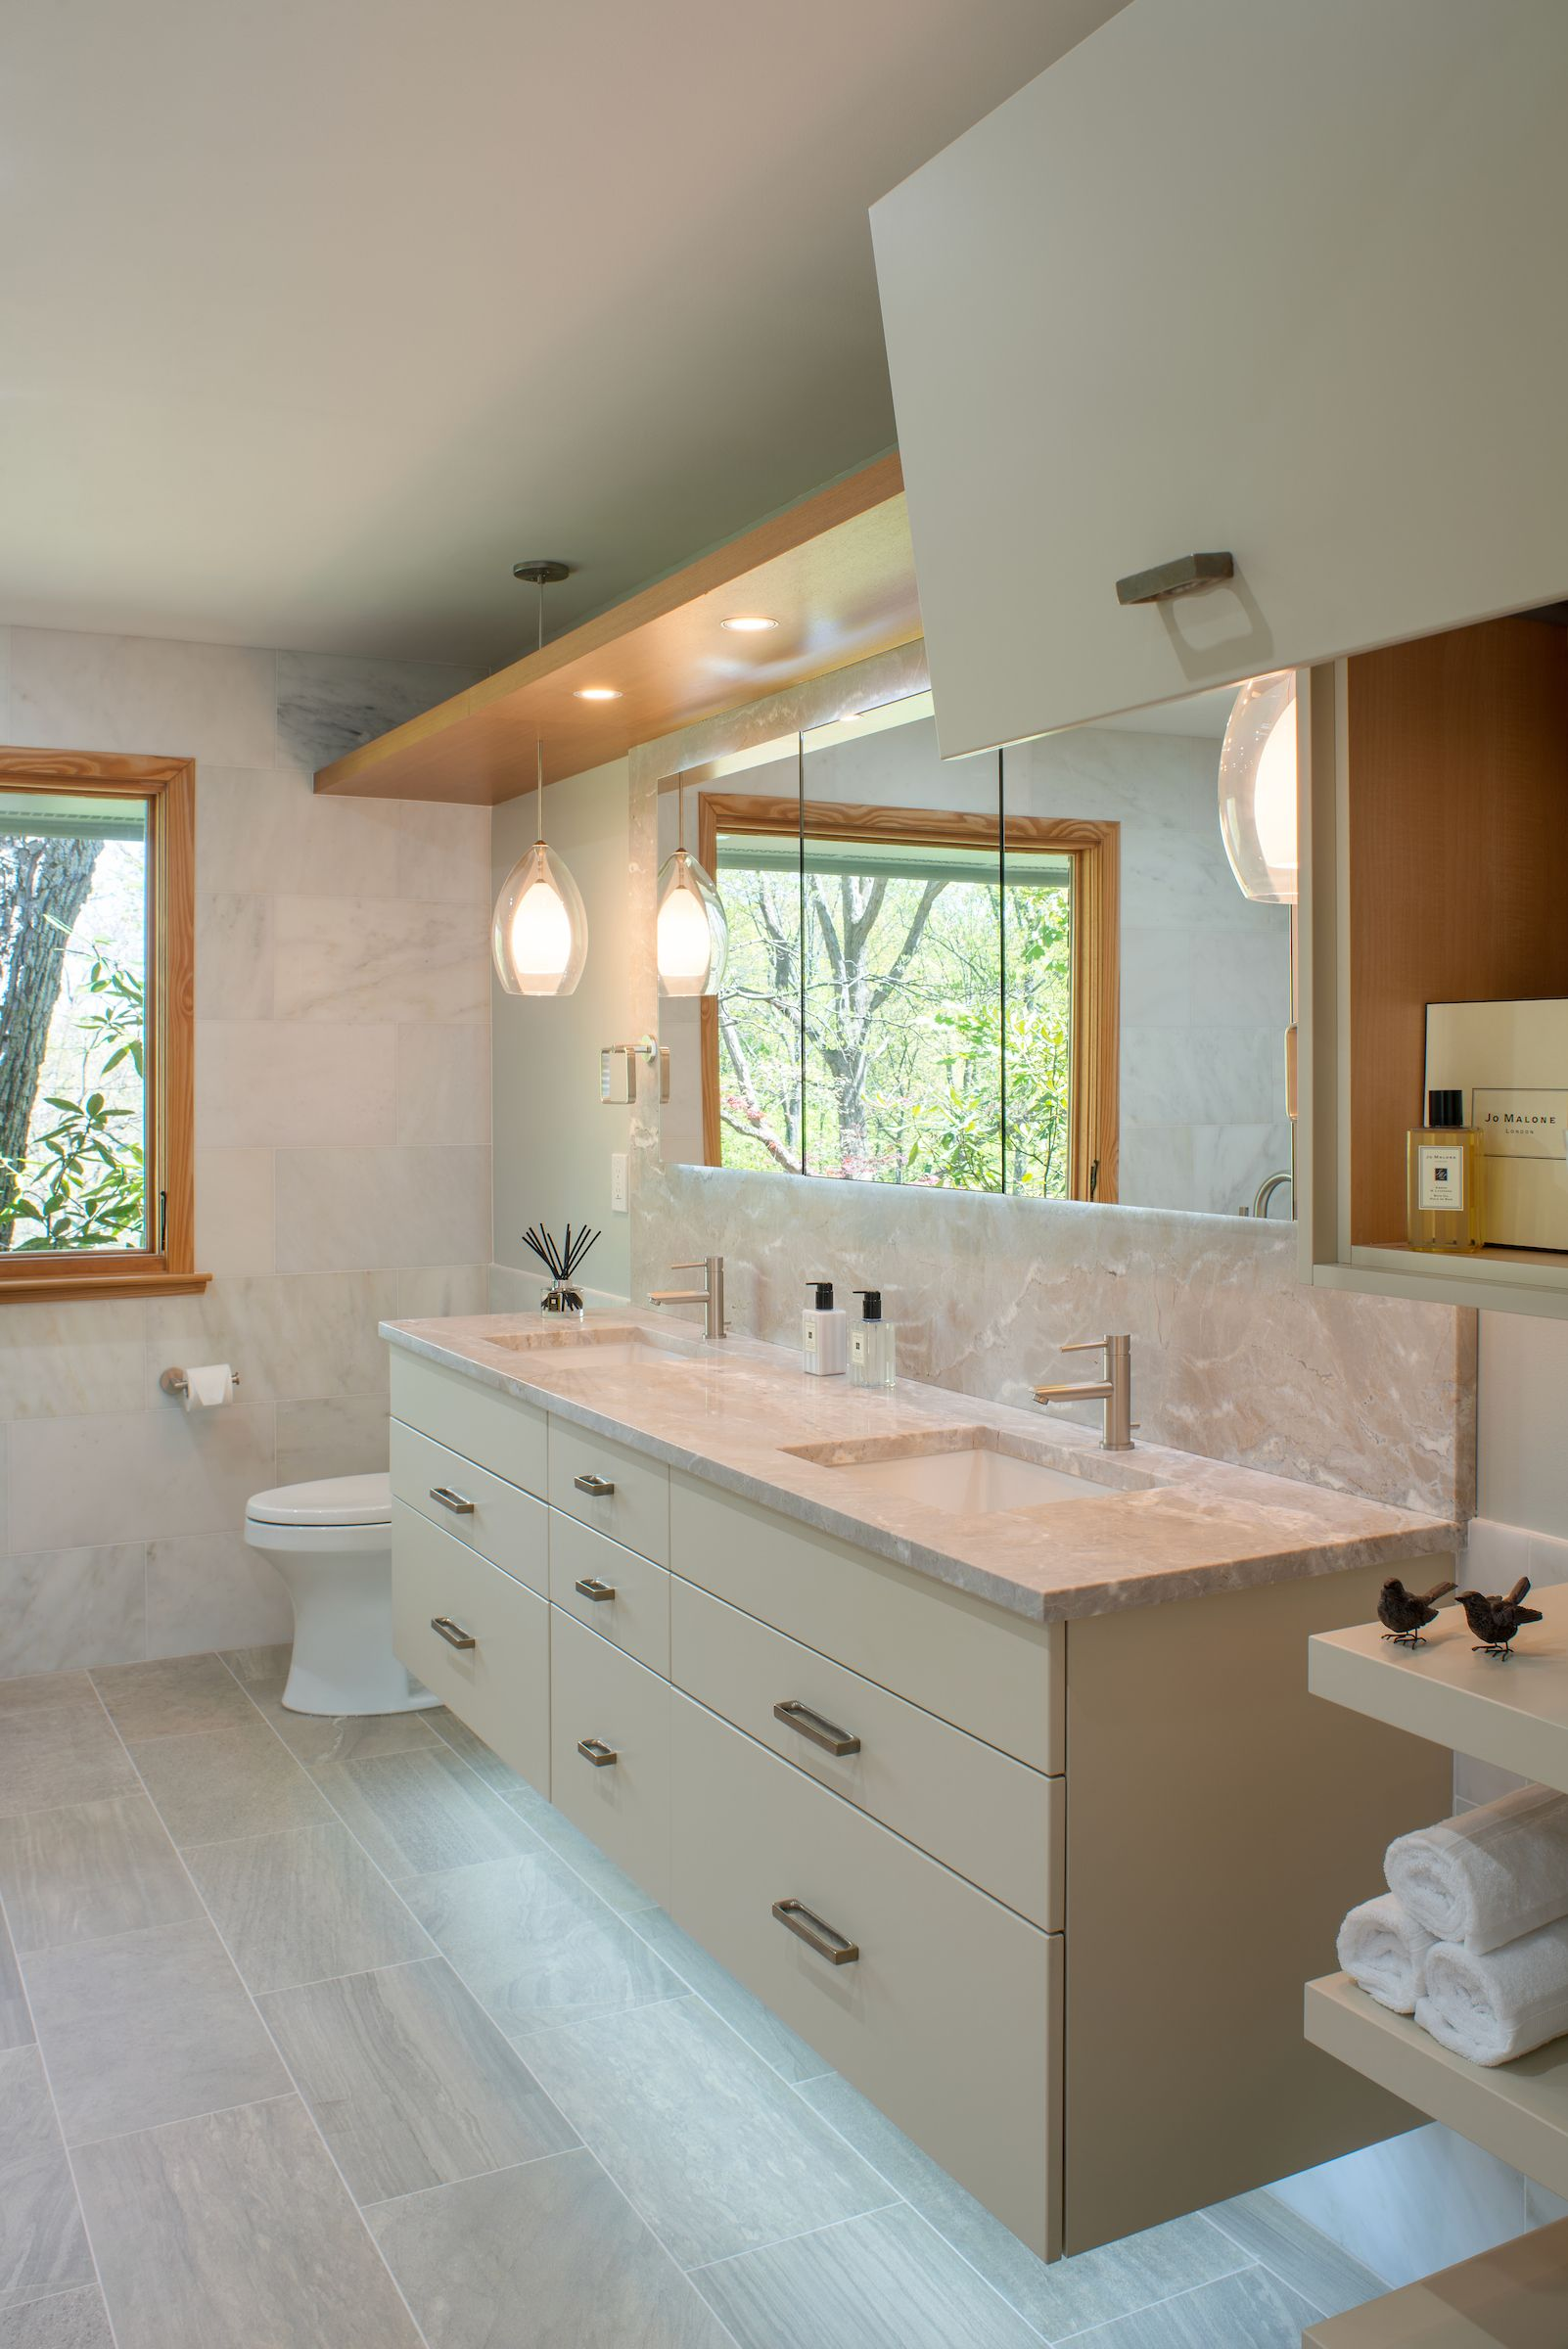 Meghanbrowne4jennifergilmer Bathdesign Luxurymasterbathroom For